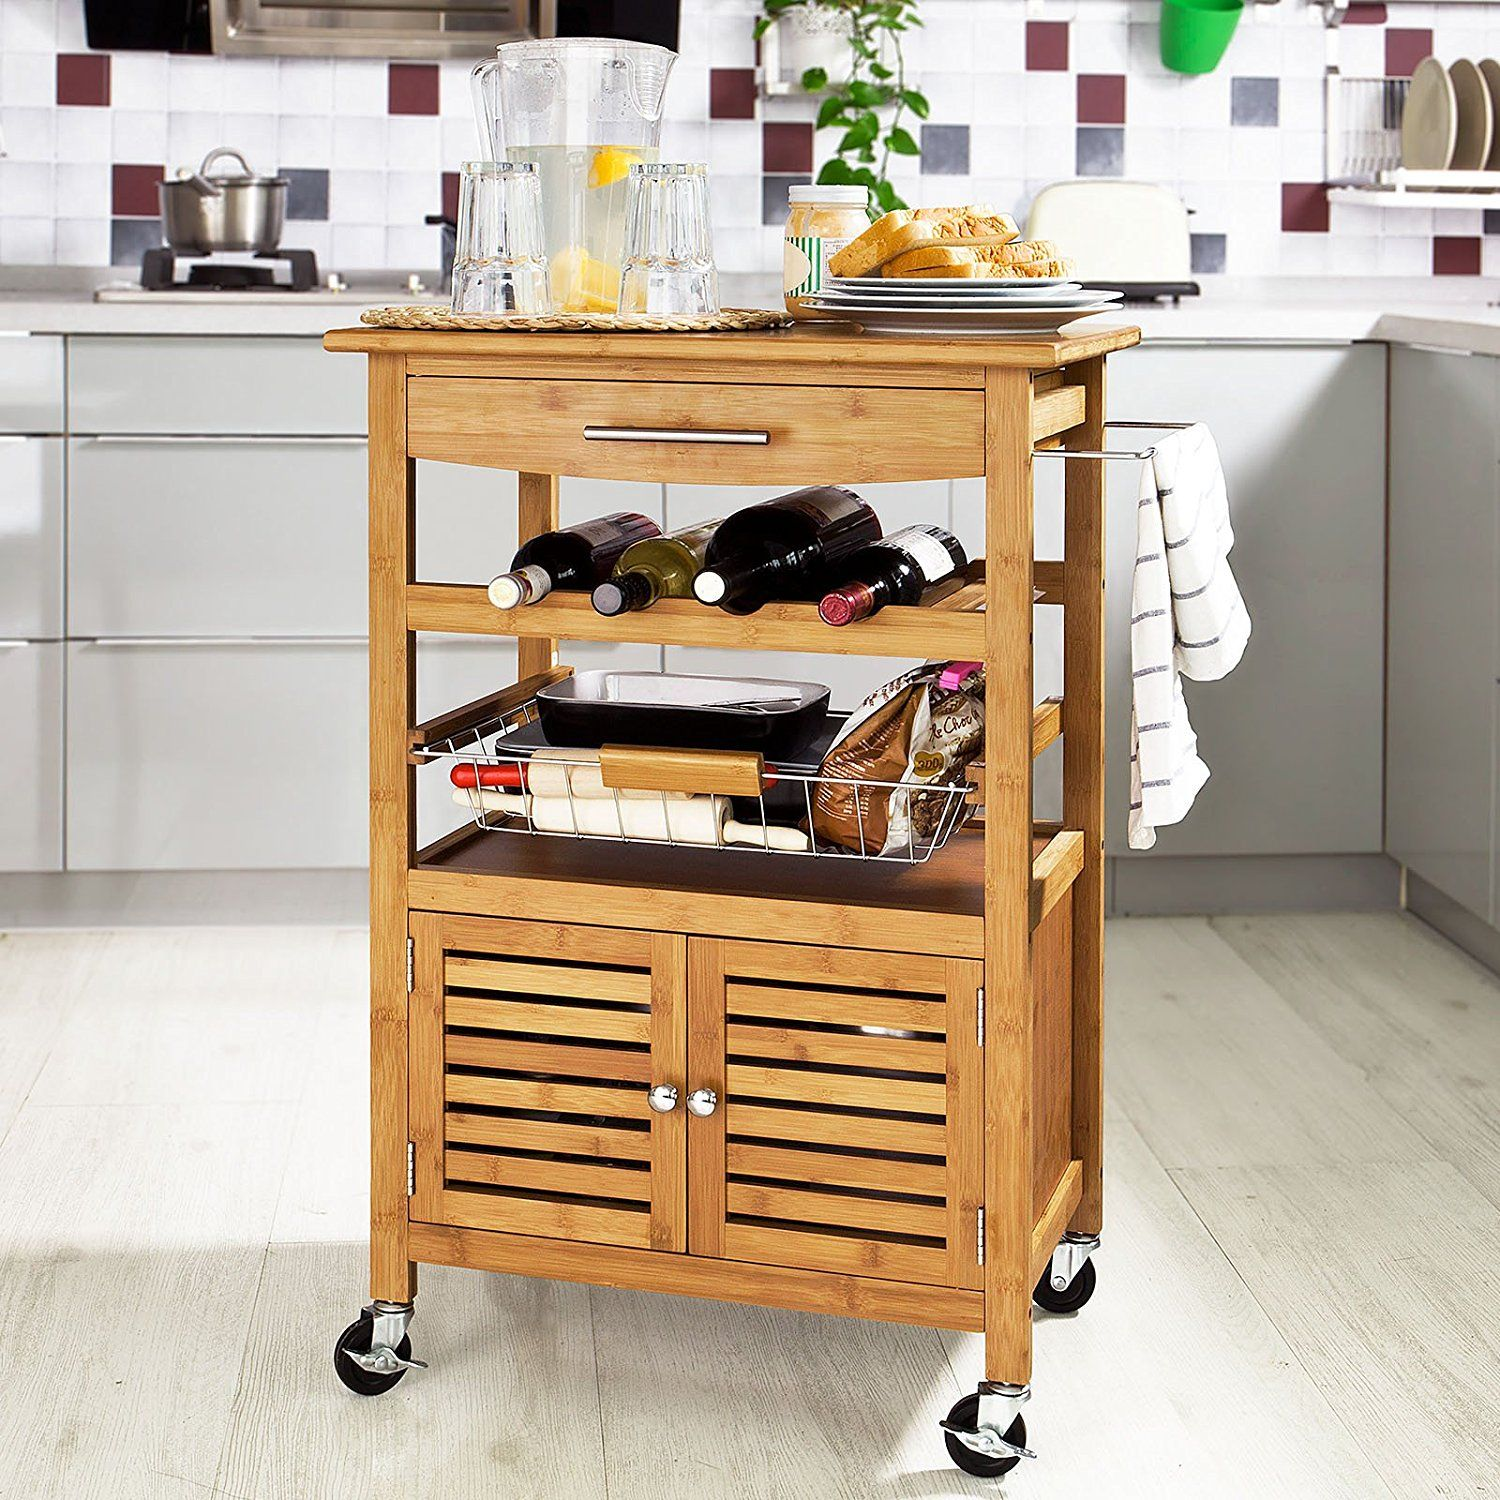 So Large Wheeled Kitchen Trolley Storage Rack From Cabinets Trolleys Pictures